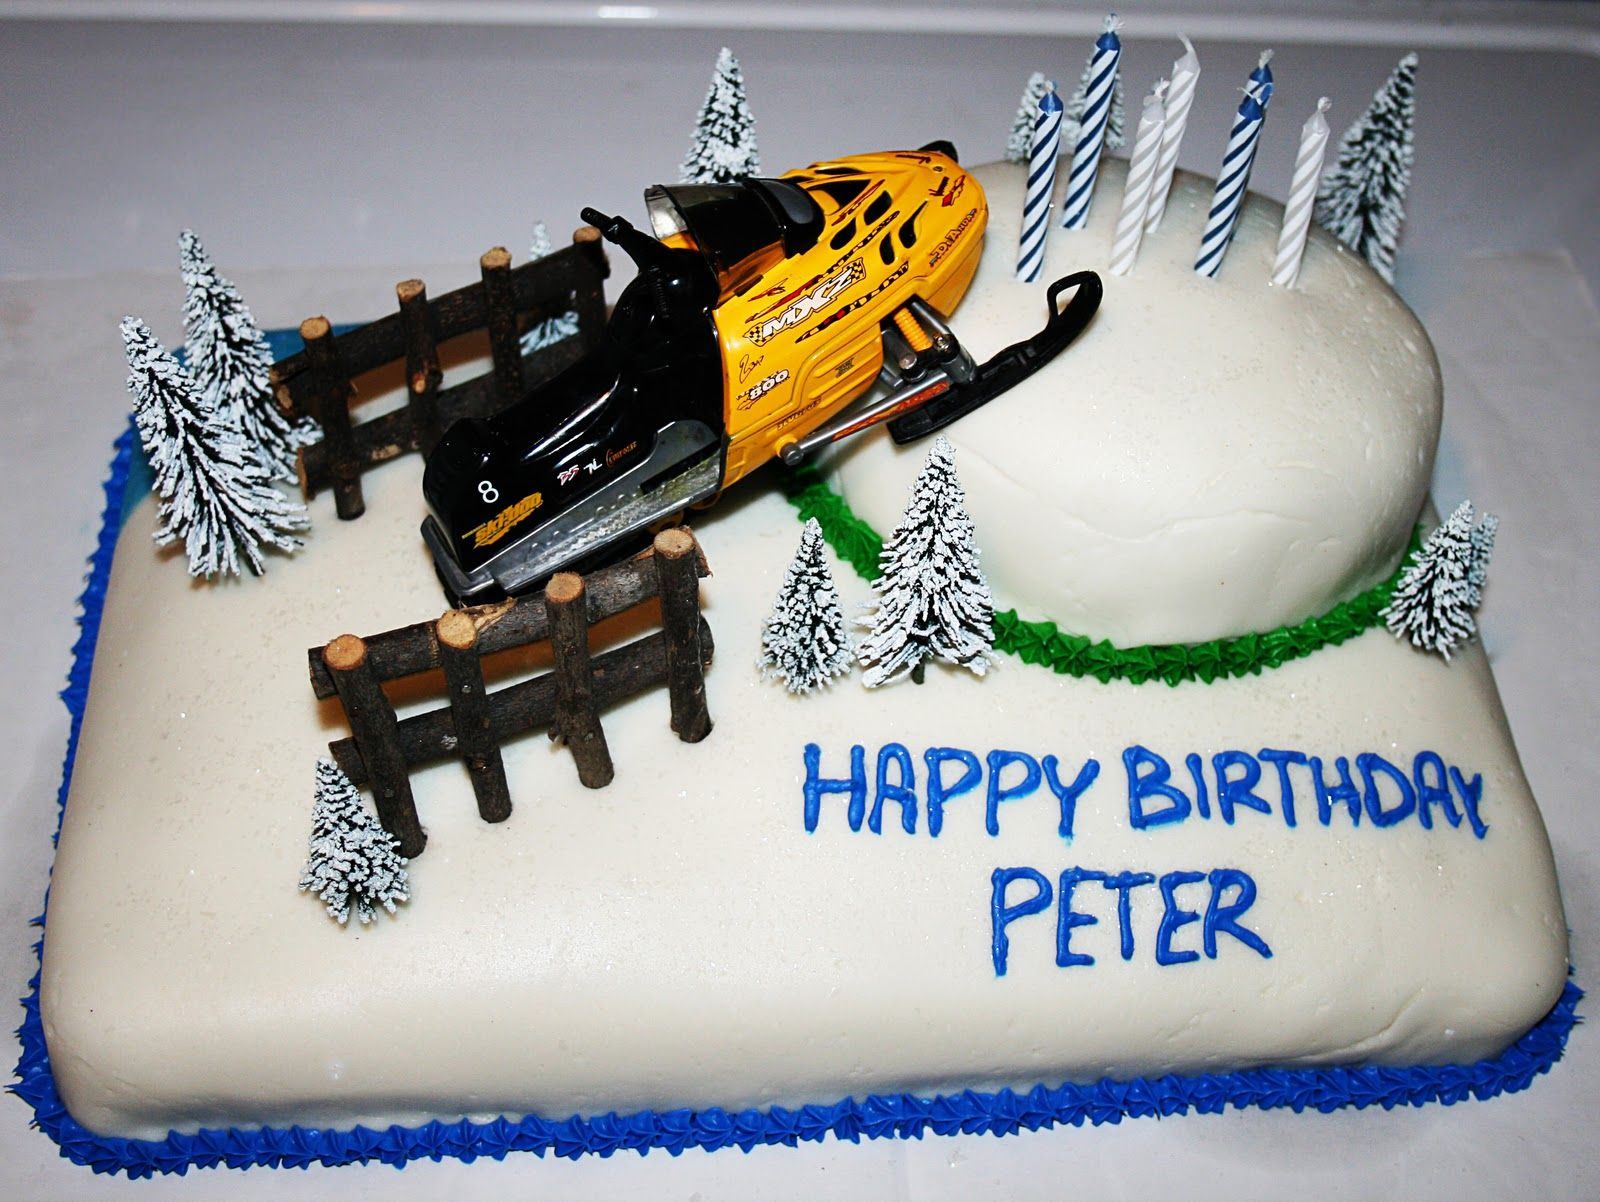 We Are So Jealous Of Peter Where Can We Get A Cake Like That